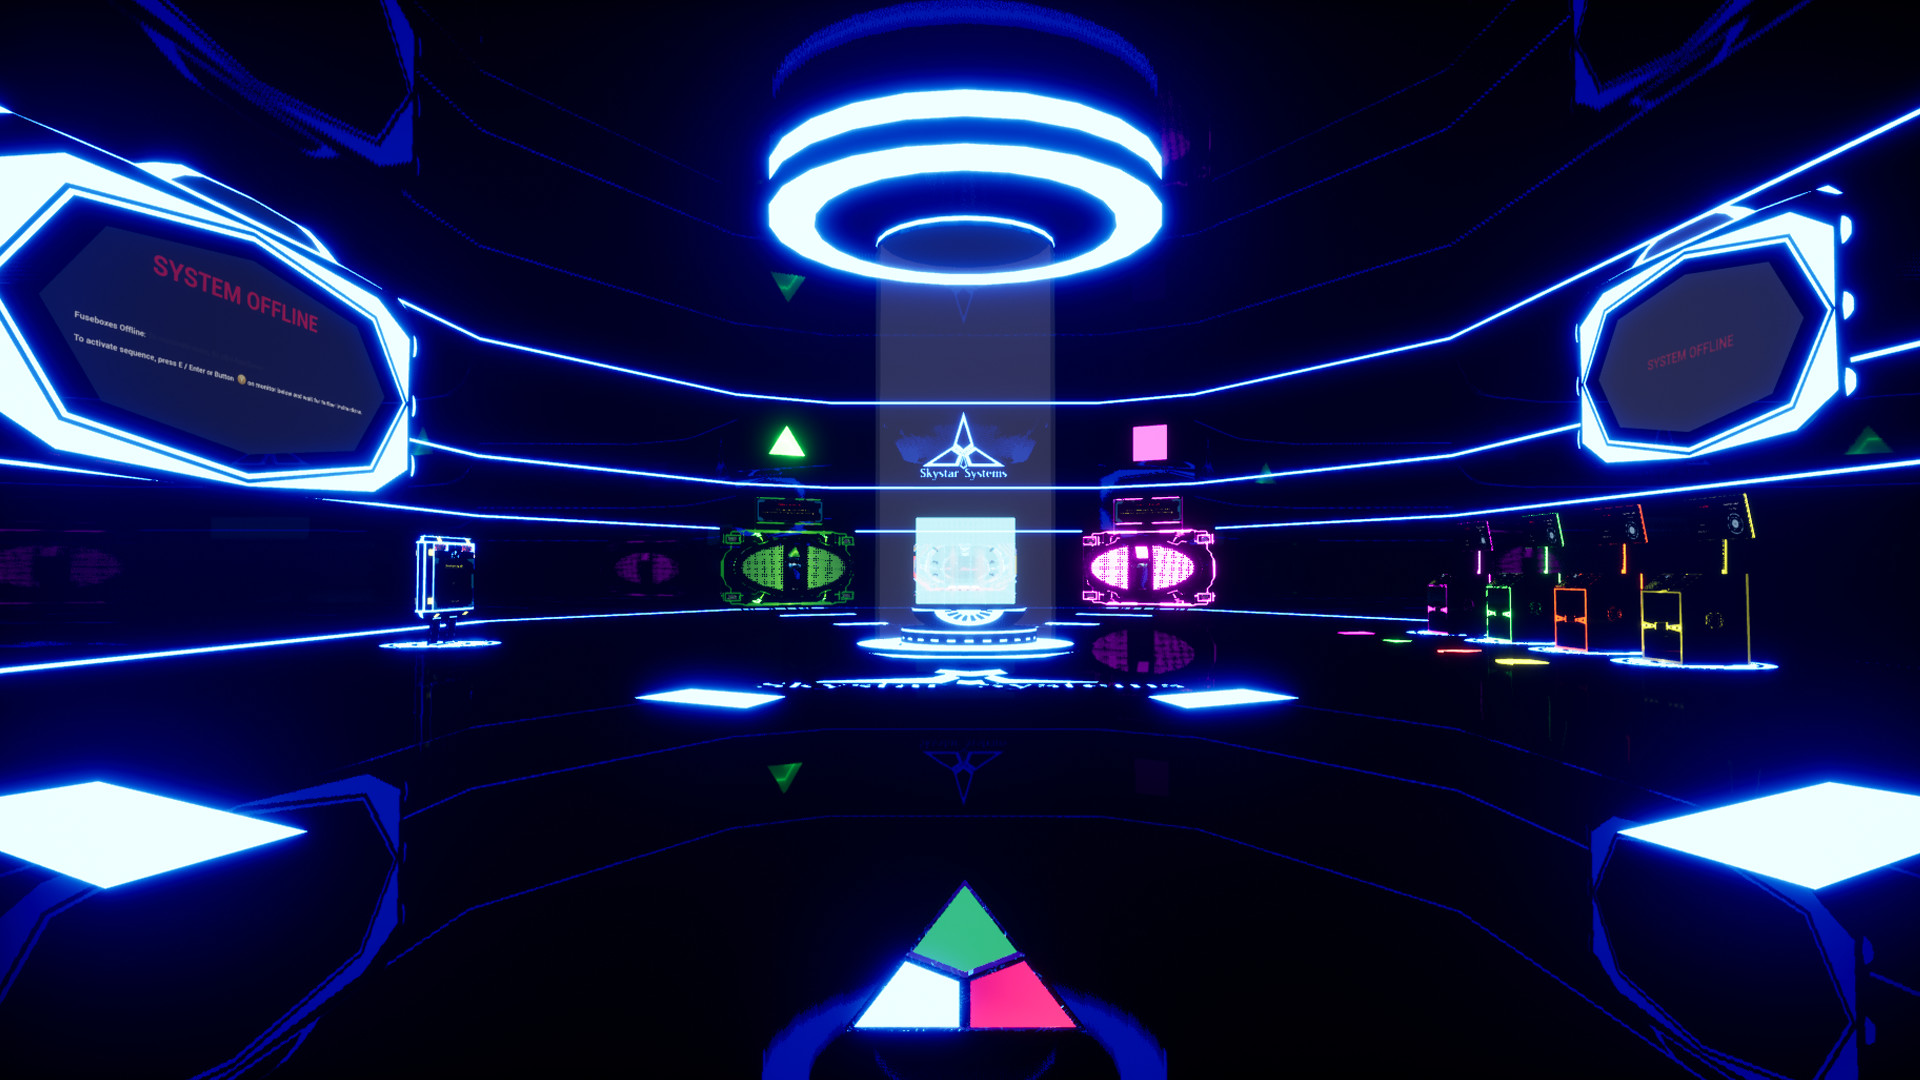 Solo-developed puzzler Fused released this week